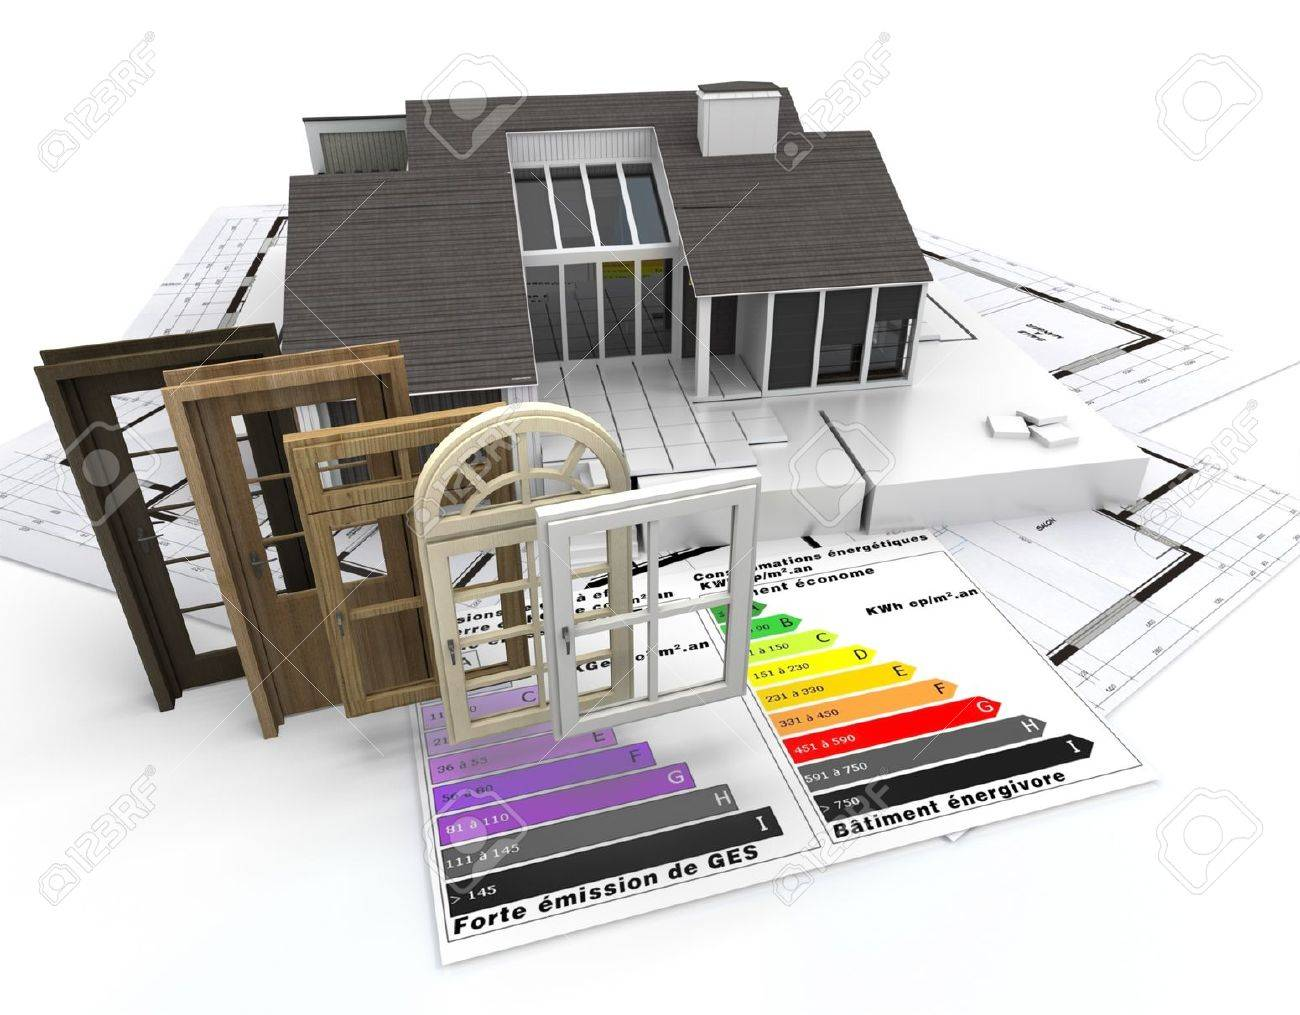 Home construction concept with energy efficiency chart and a selection of doors and windows Stock Photo - 18938584